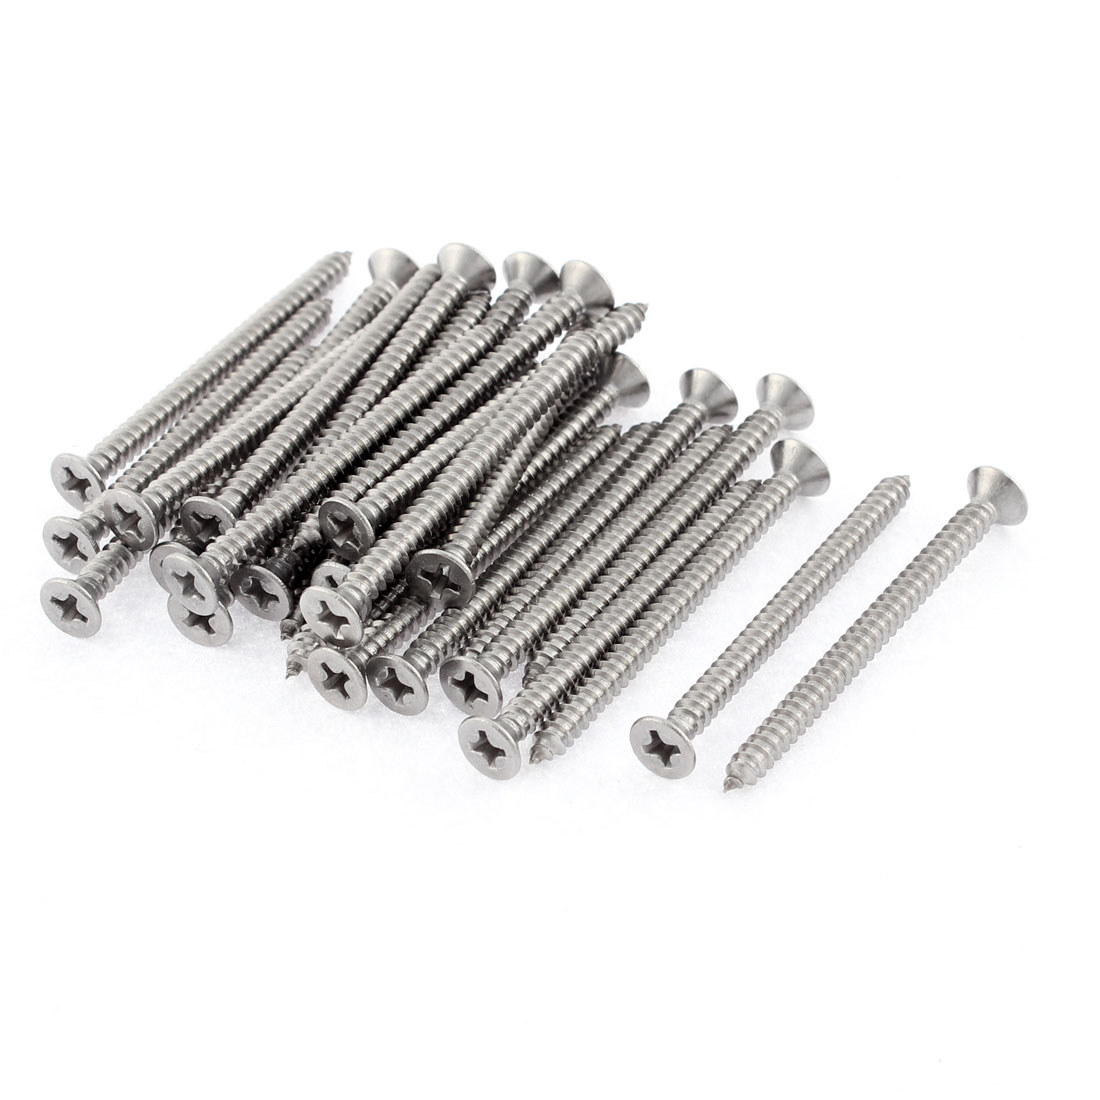 30 Pcs 3.9mmx50mm Stainless Steel Phillips Flat Head Sheet Self Tapping Screws